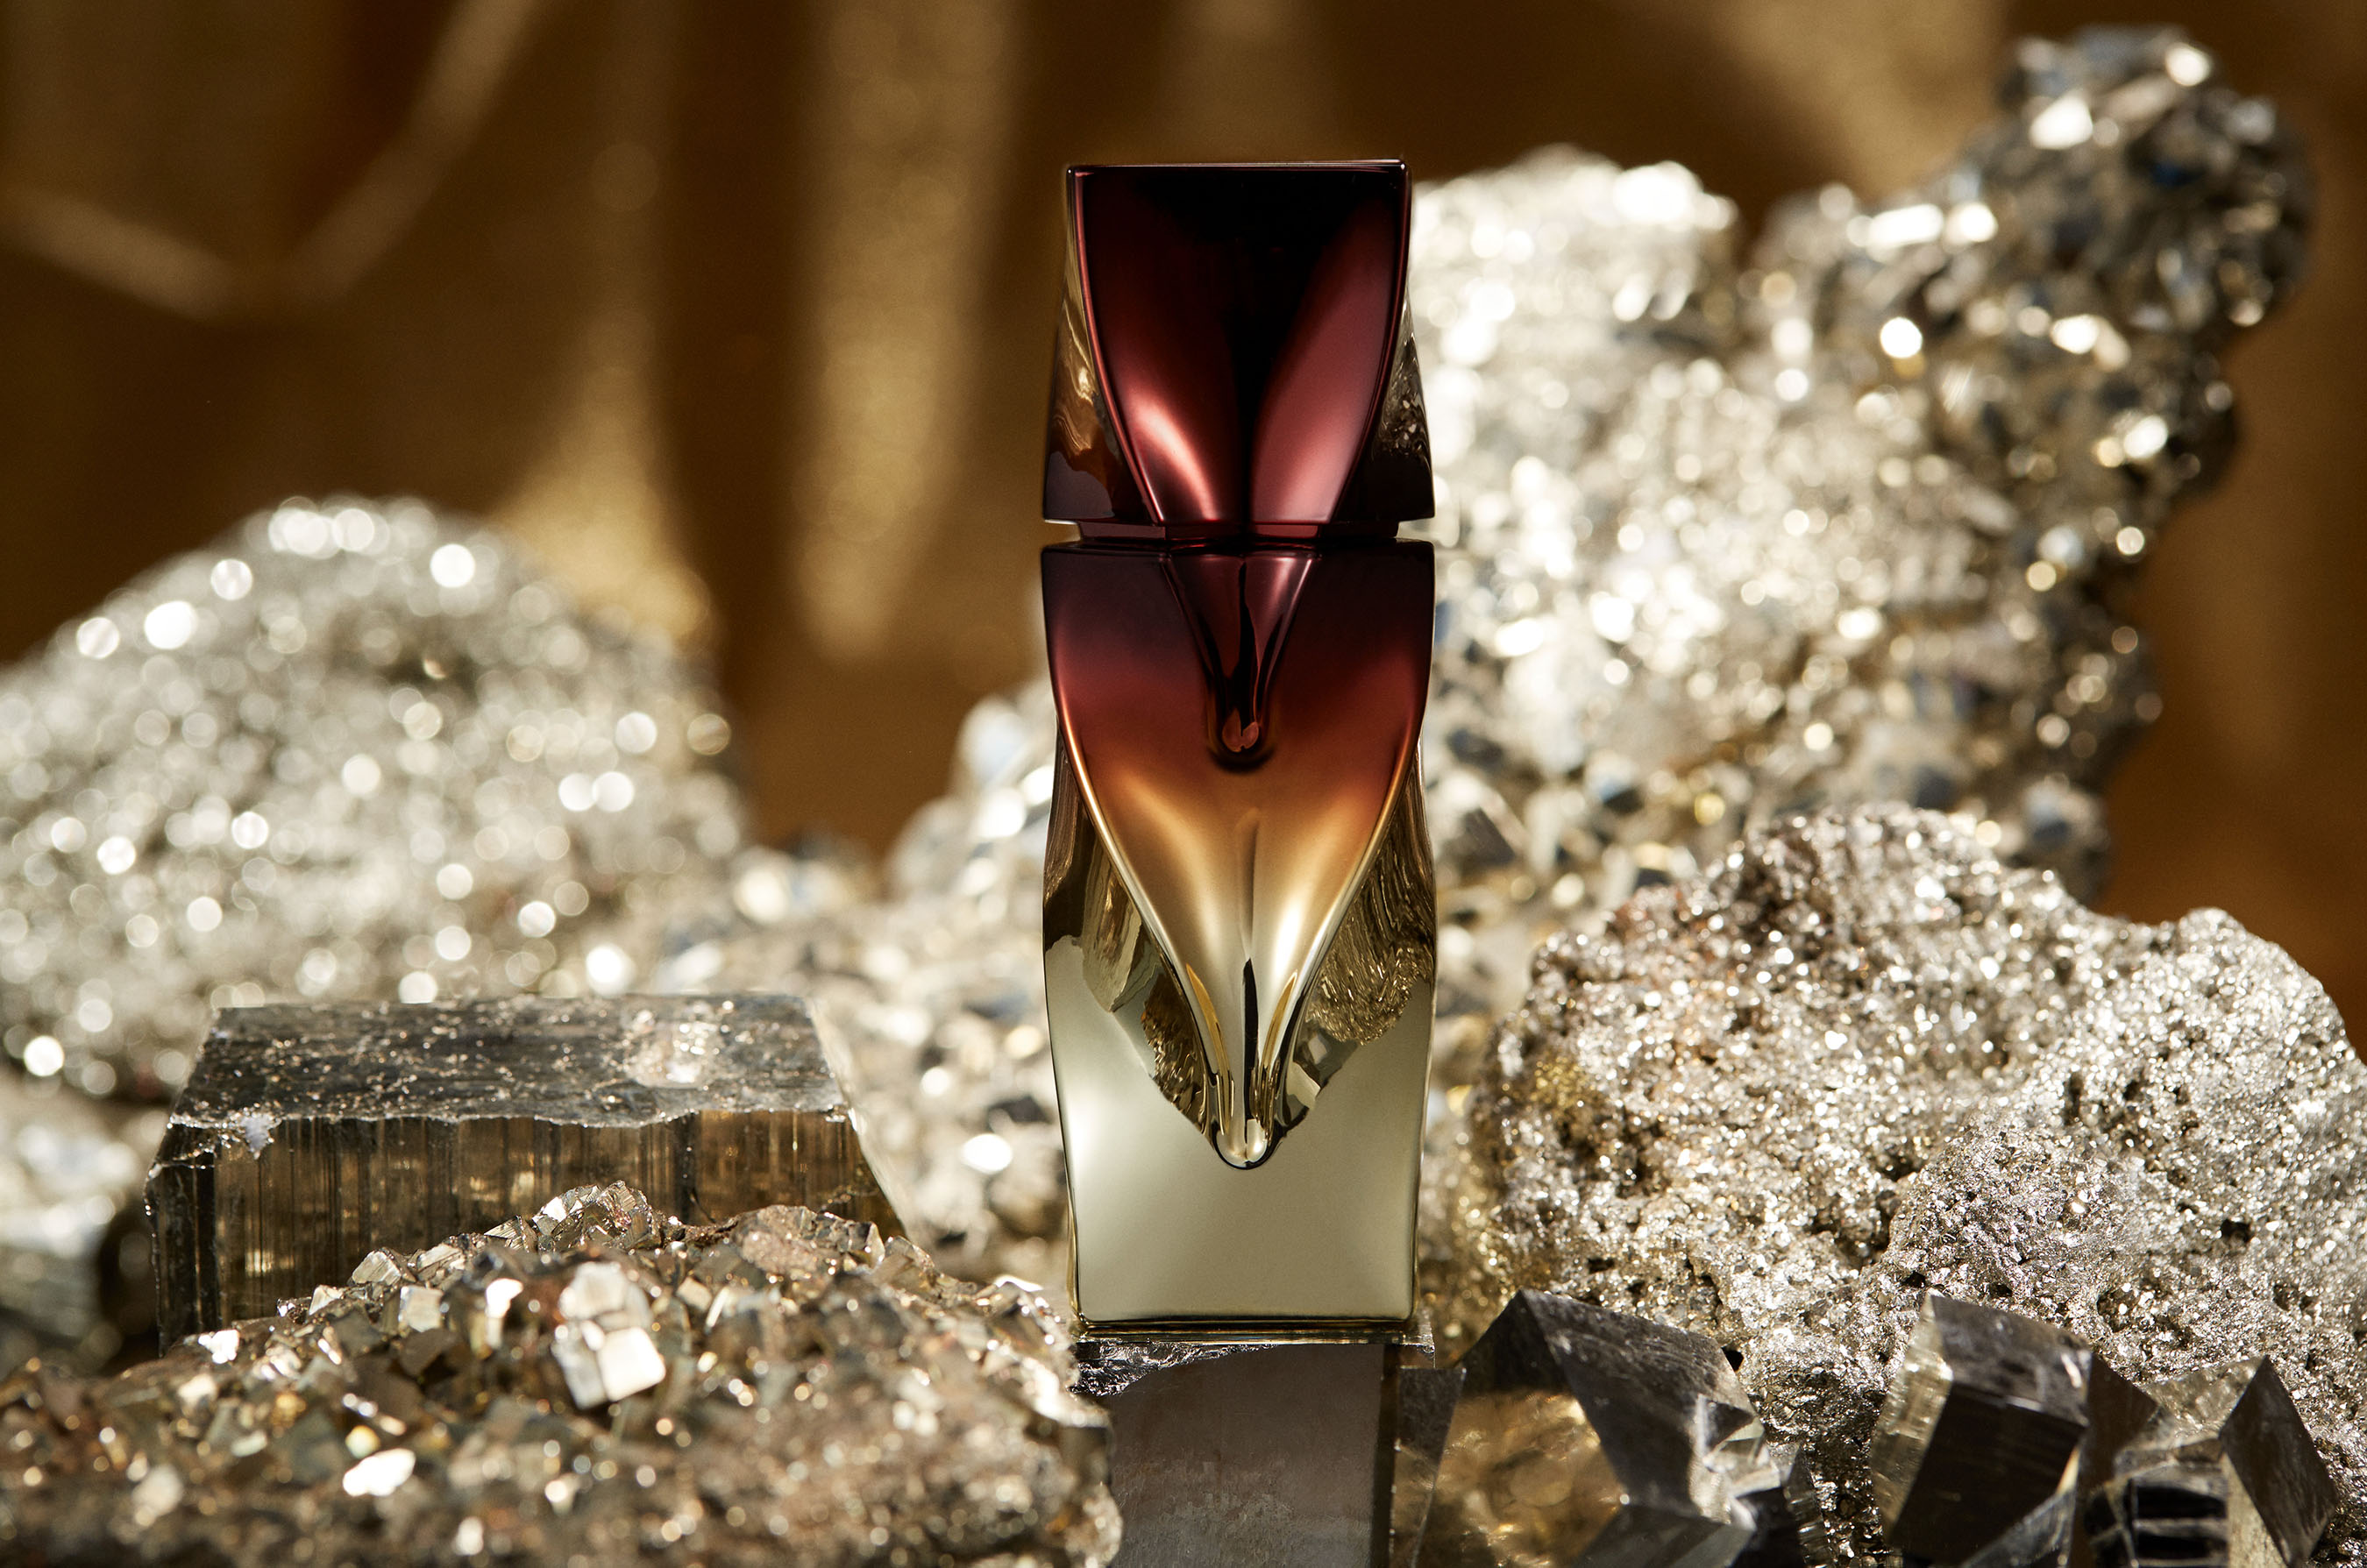 256ffd5782c3 THE ULTIMATE OPULENCE OF FRAGRANCE  CHRISTIAN LOUBOUTIN LAUNCHES THREE  PERFUME OILS